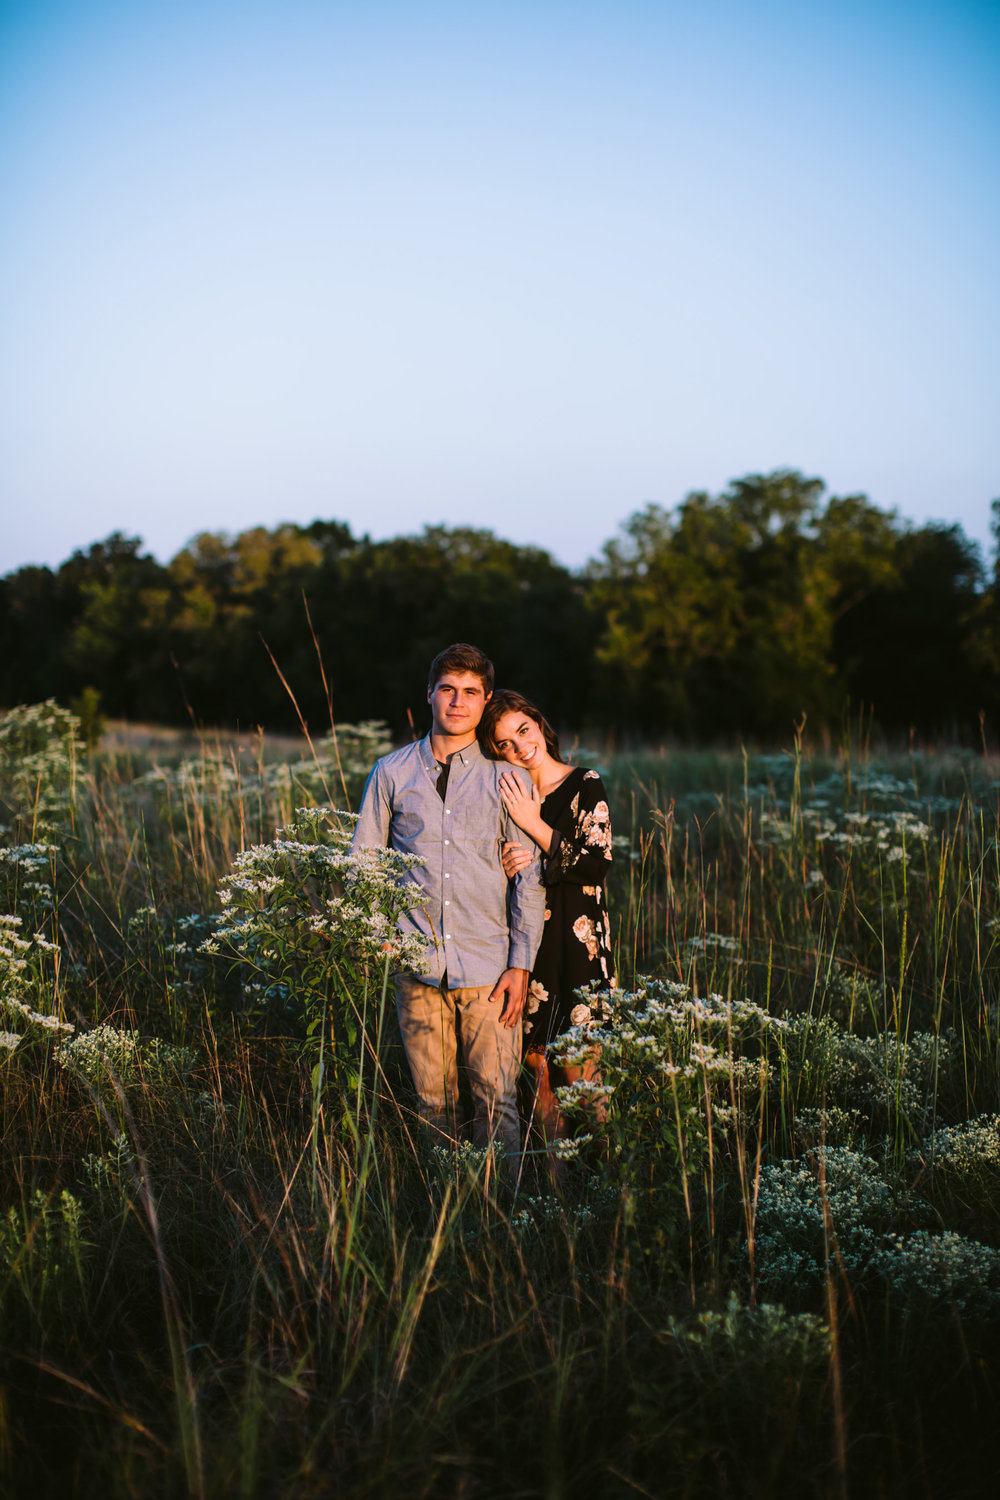 80_Lacygne Kansas Hike Engagement Session Kansas City, Missouri_Kindling Wedding Photography.JPG